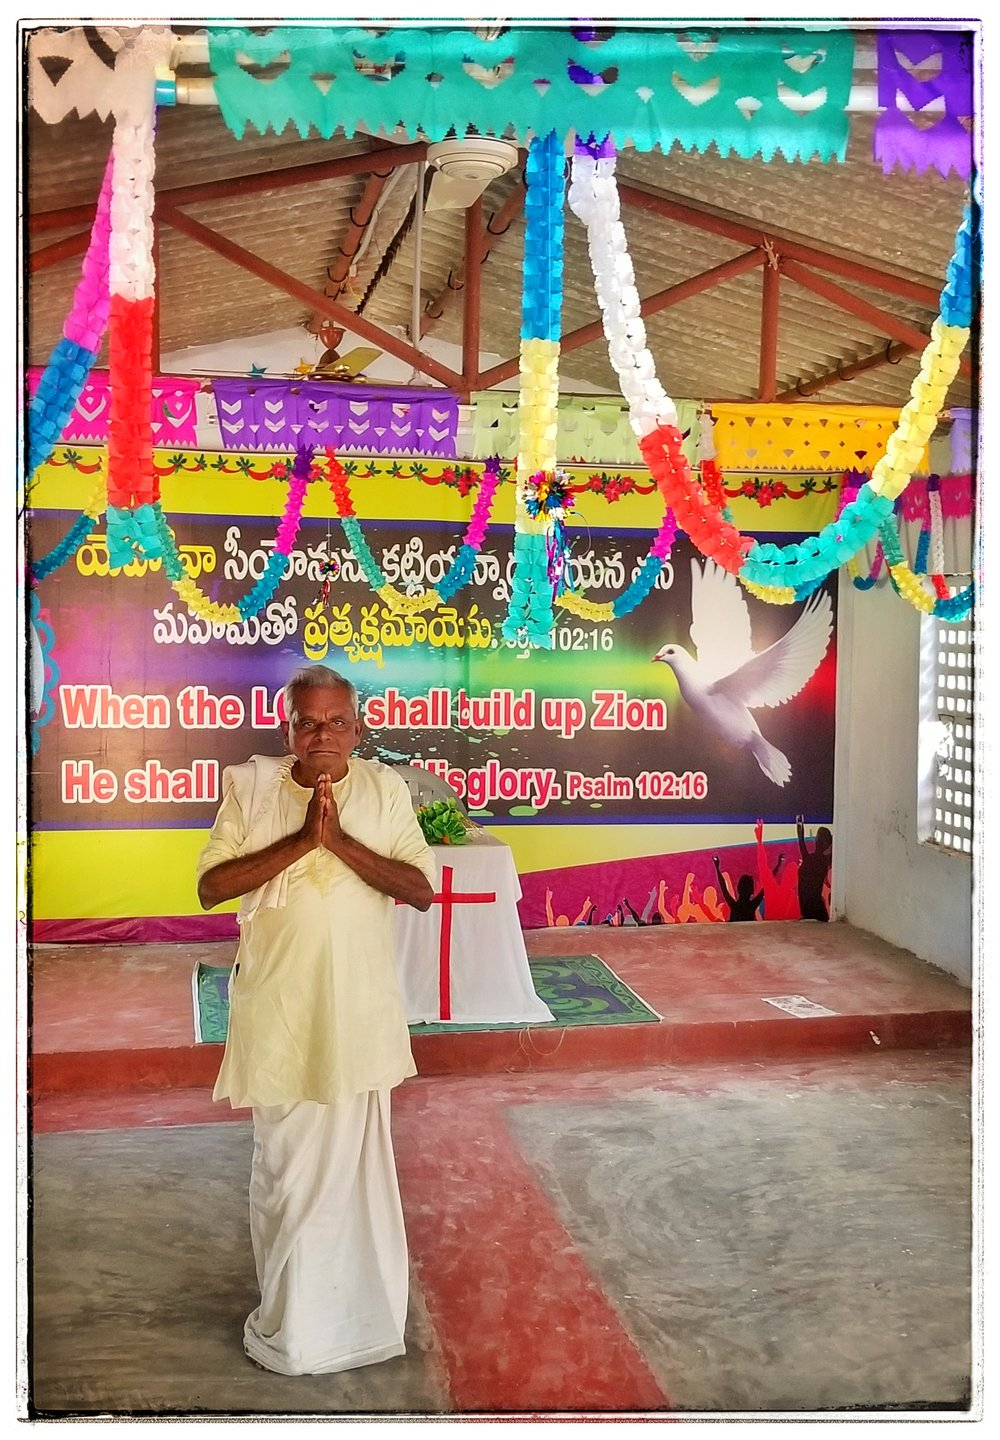 Indian Christian pastor and his colorful church in India. All the churches were vibrant.